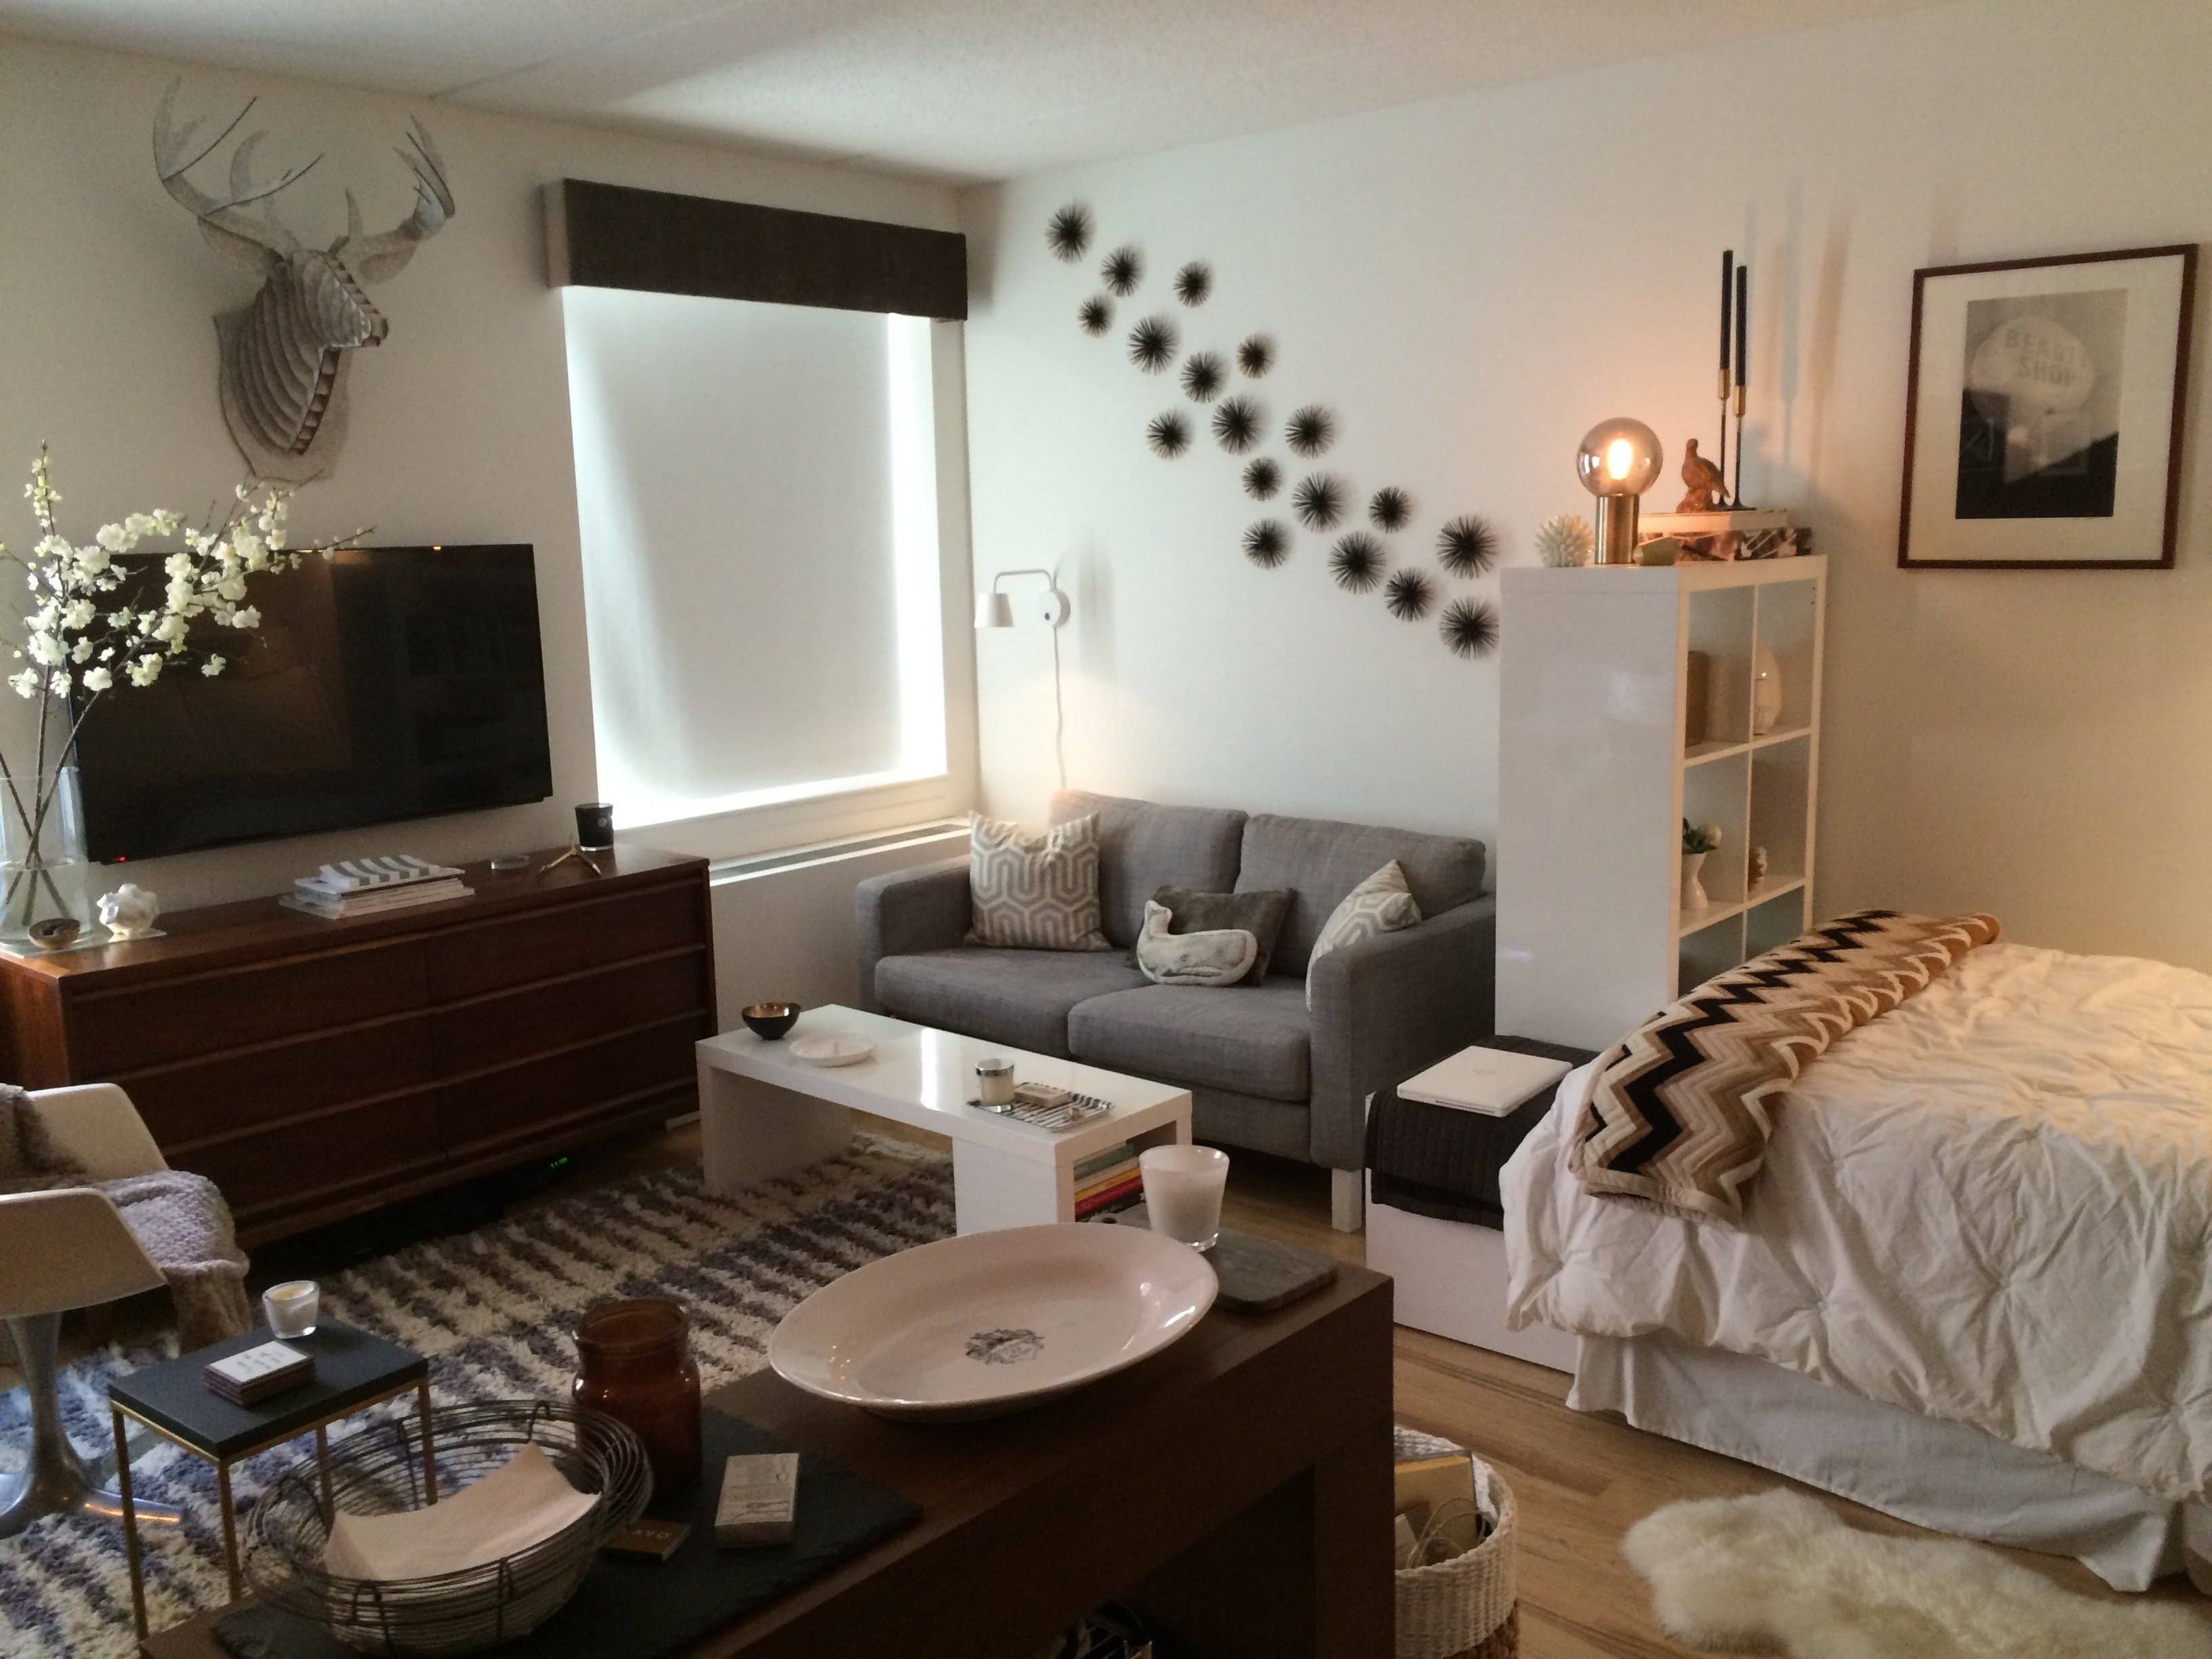 5 Studio Apartment Layouts That Work Studio Apartment